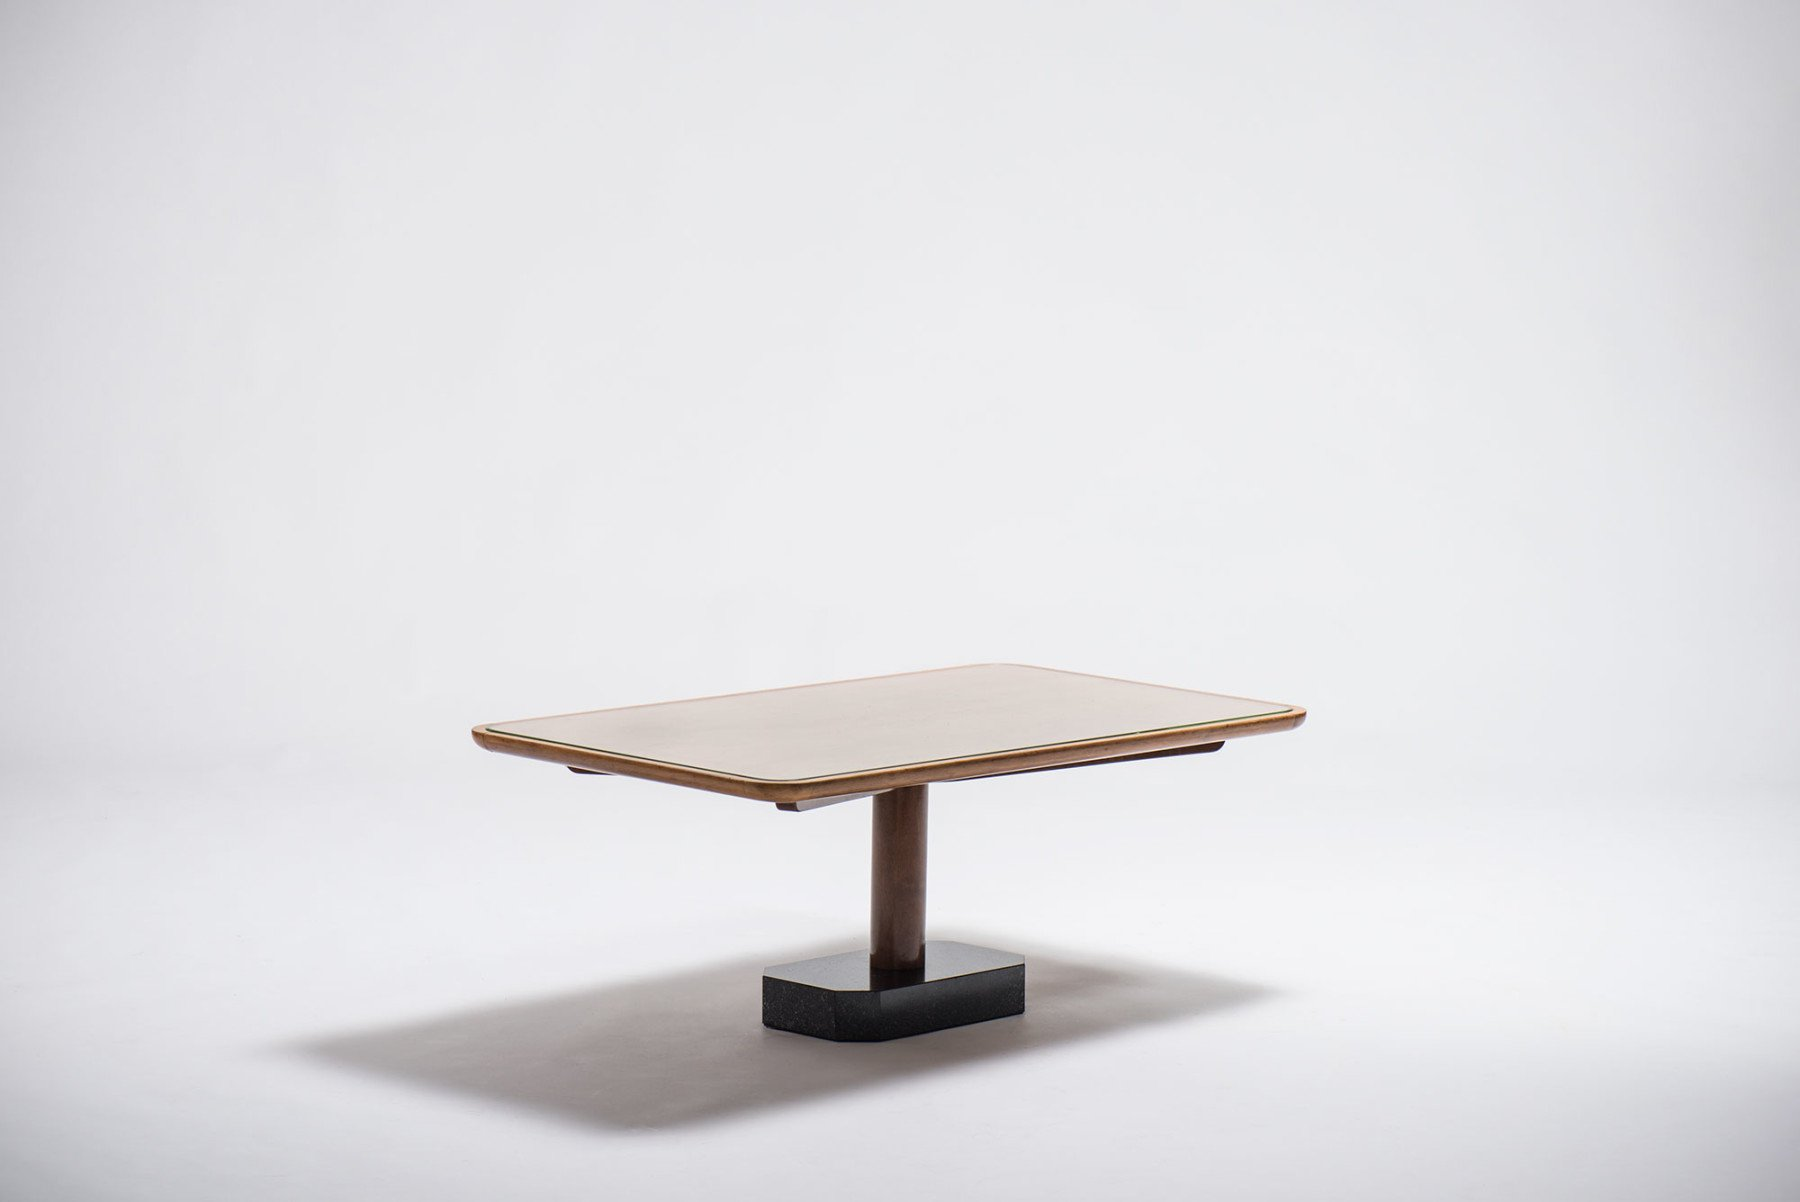 Luigi Caccia Dominioni |   Coffee table